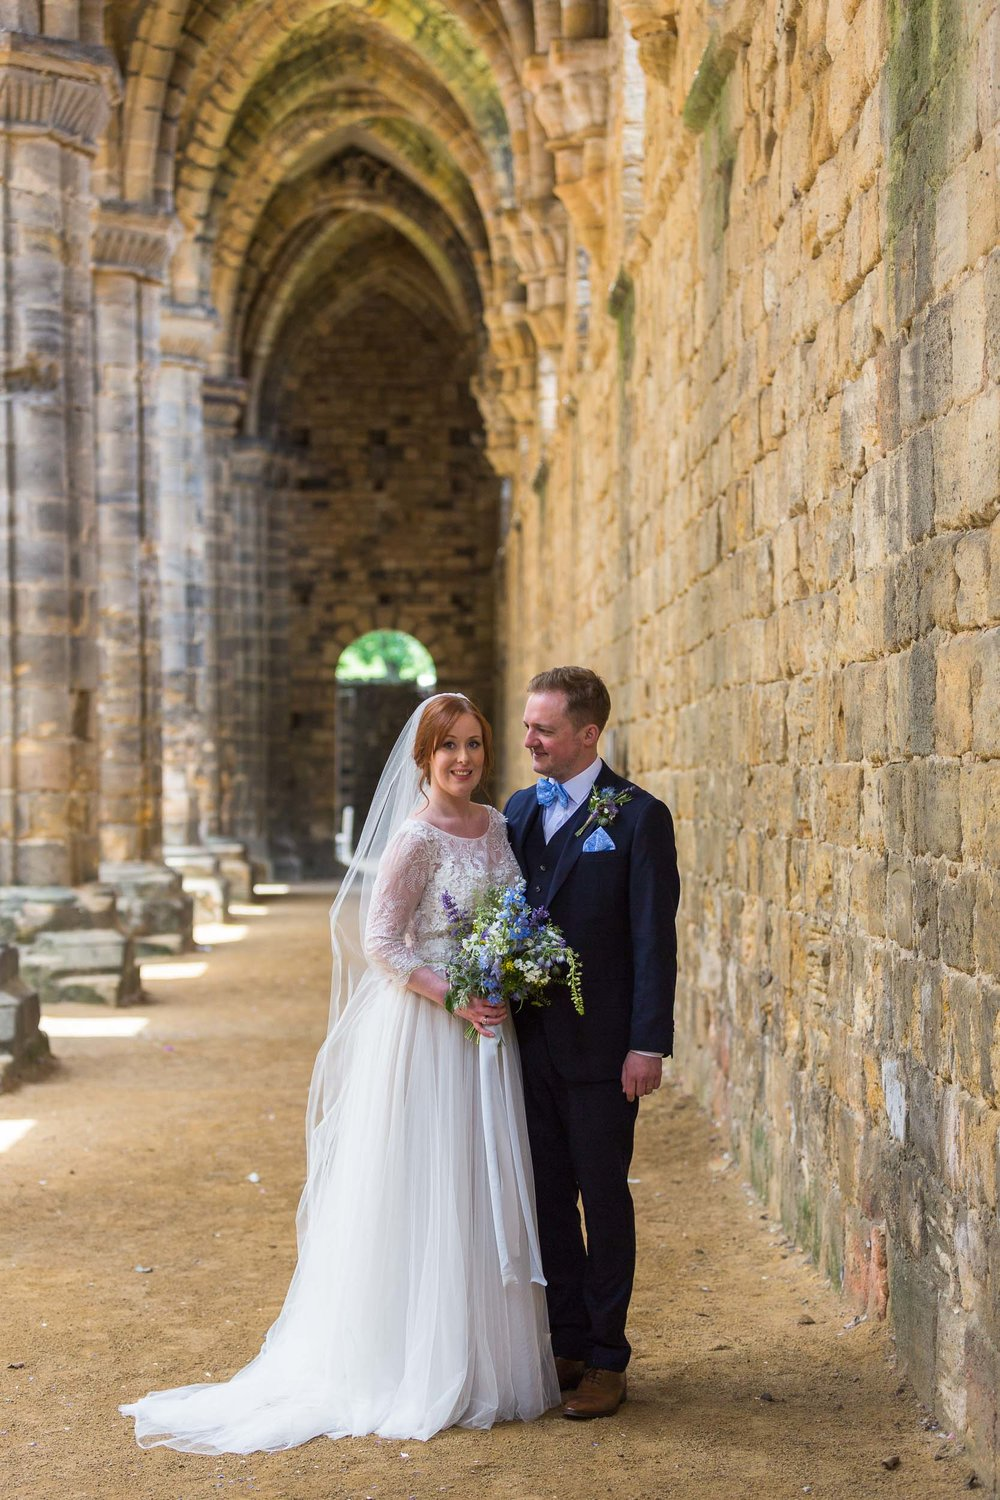 Amy & Oliver-Wedding Part II-Kirkstall Abbey-Leeds-photo-0333.jpg